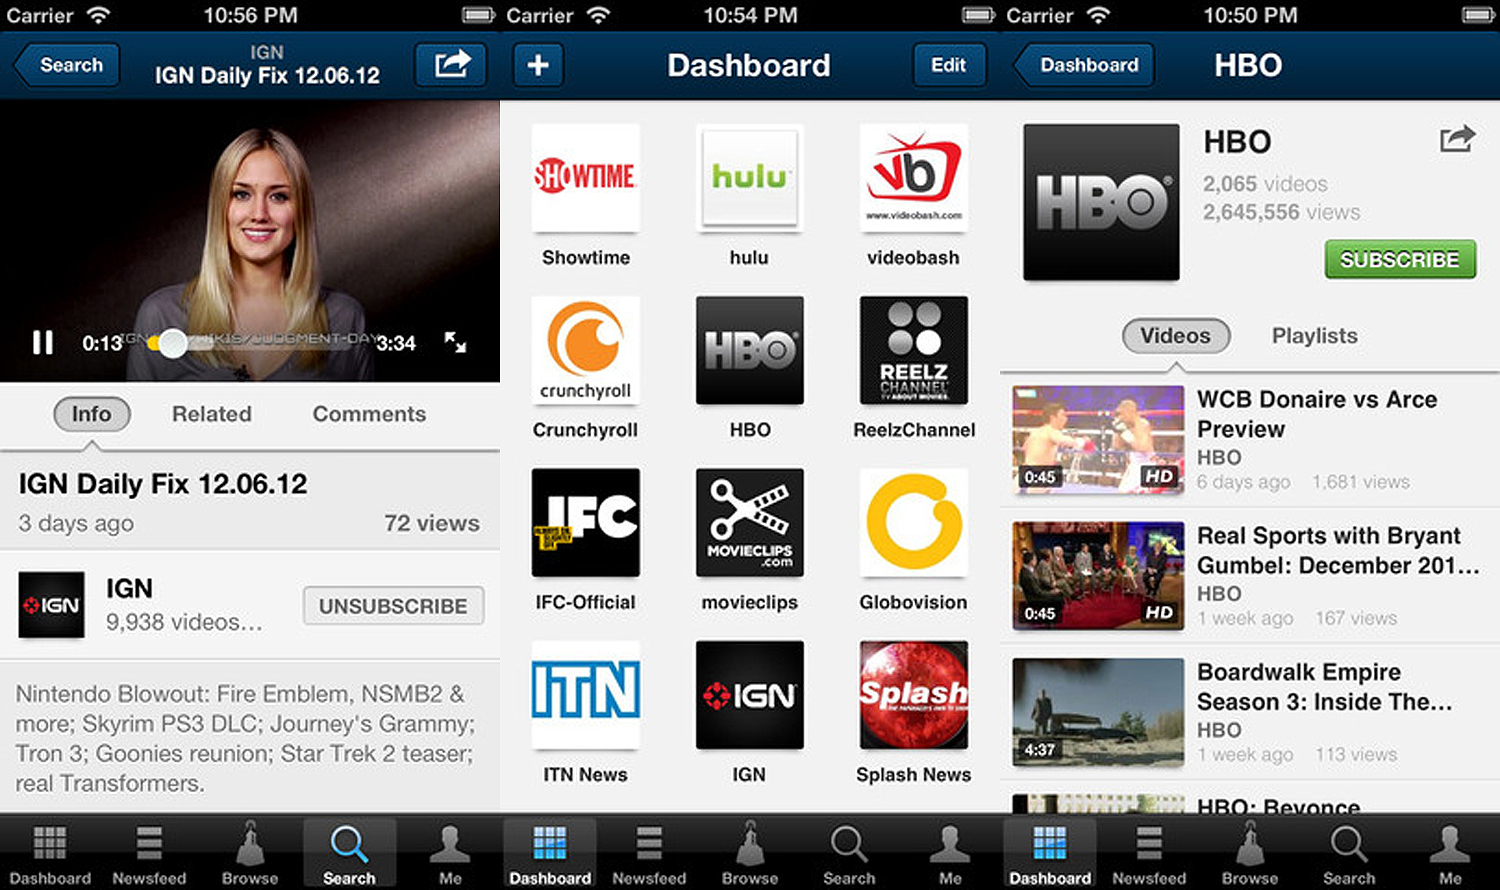 dailymotion ios Online video giant Dailymotion updates iOS app with a fresh UI and better playlist organisation